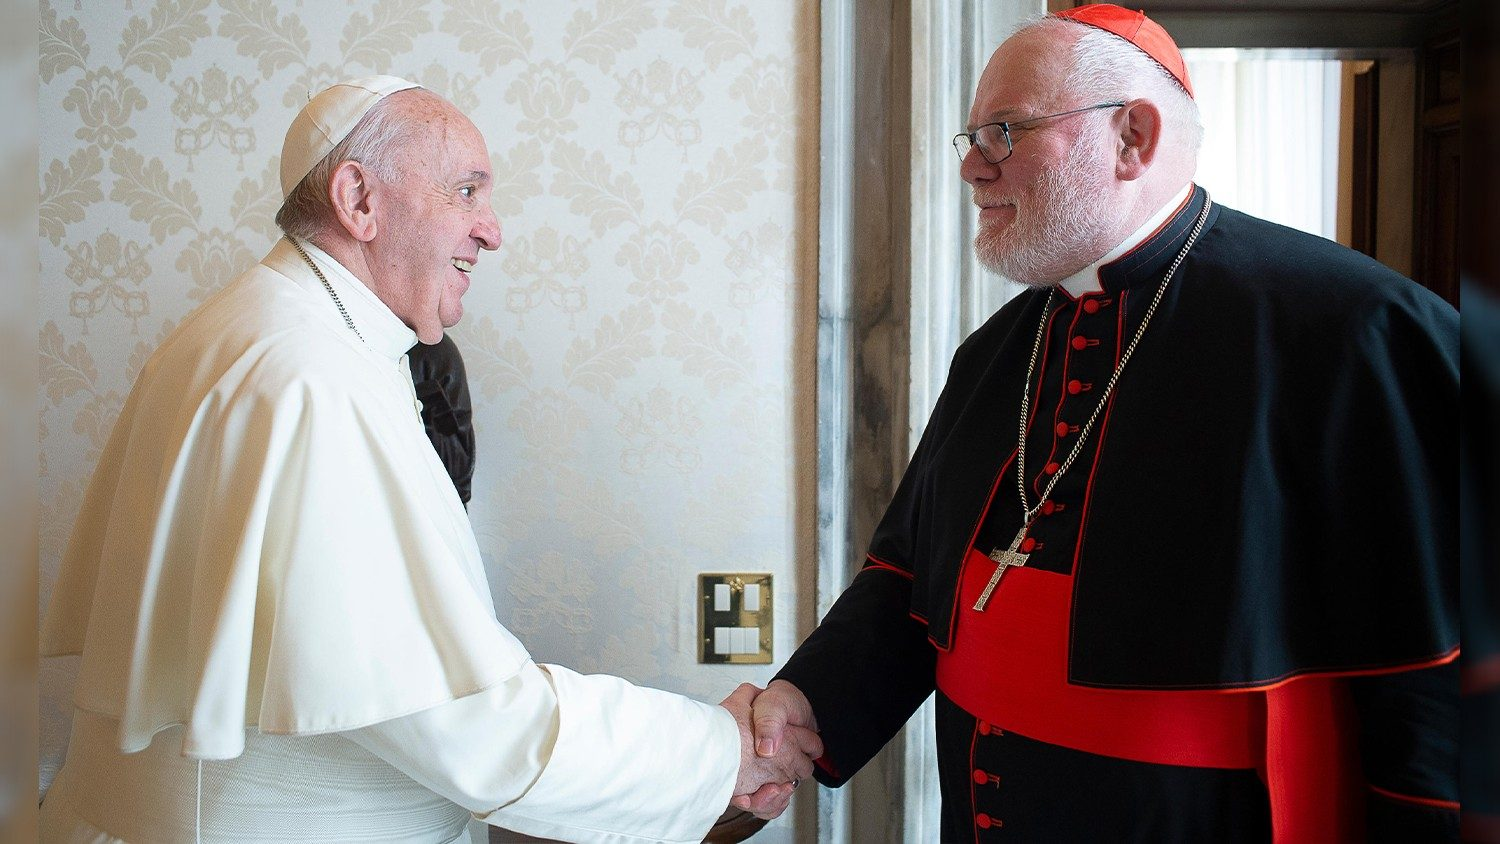 Pope Francis rejects Cardinal Marx' resignation: 'Continue as Archbishop of Munich' - Vatican News